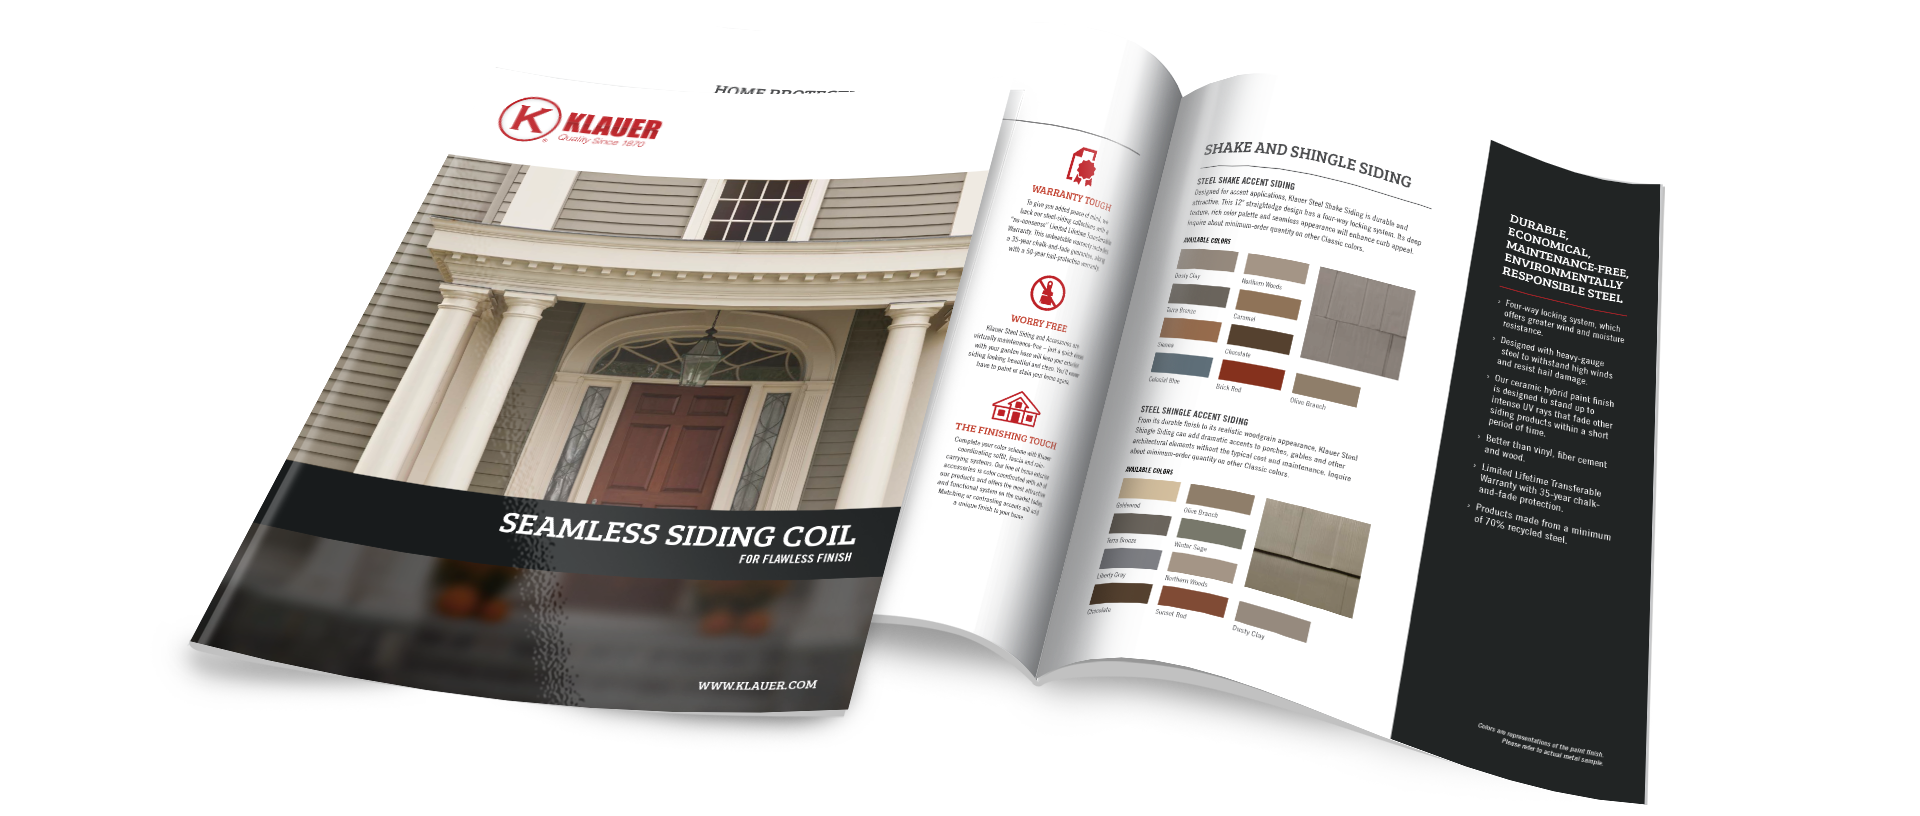 Klauer Manufacturing Product Brochure Cover and Interior Spread